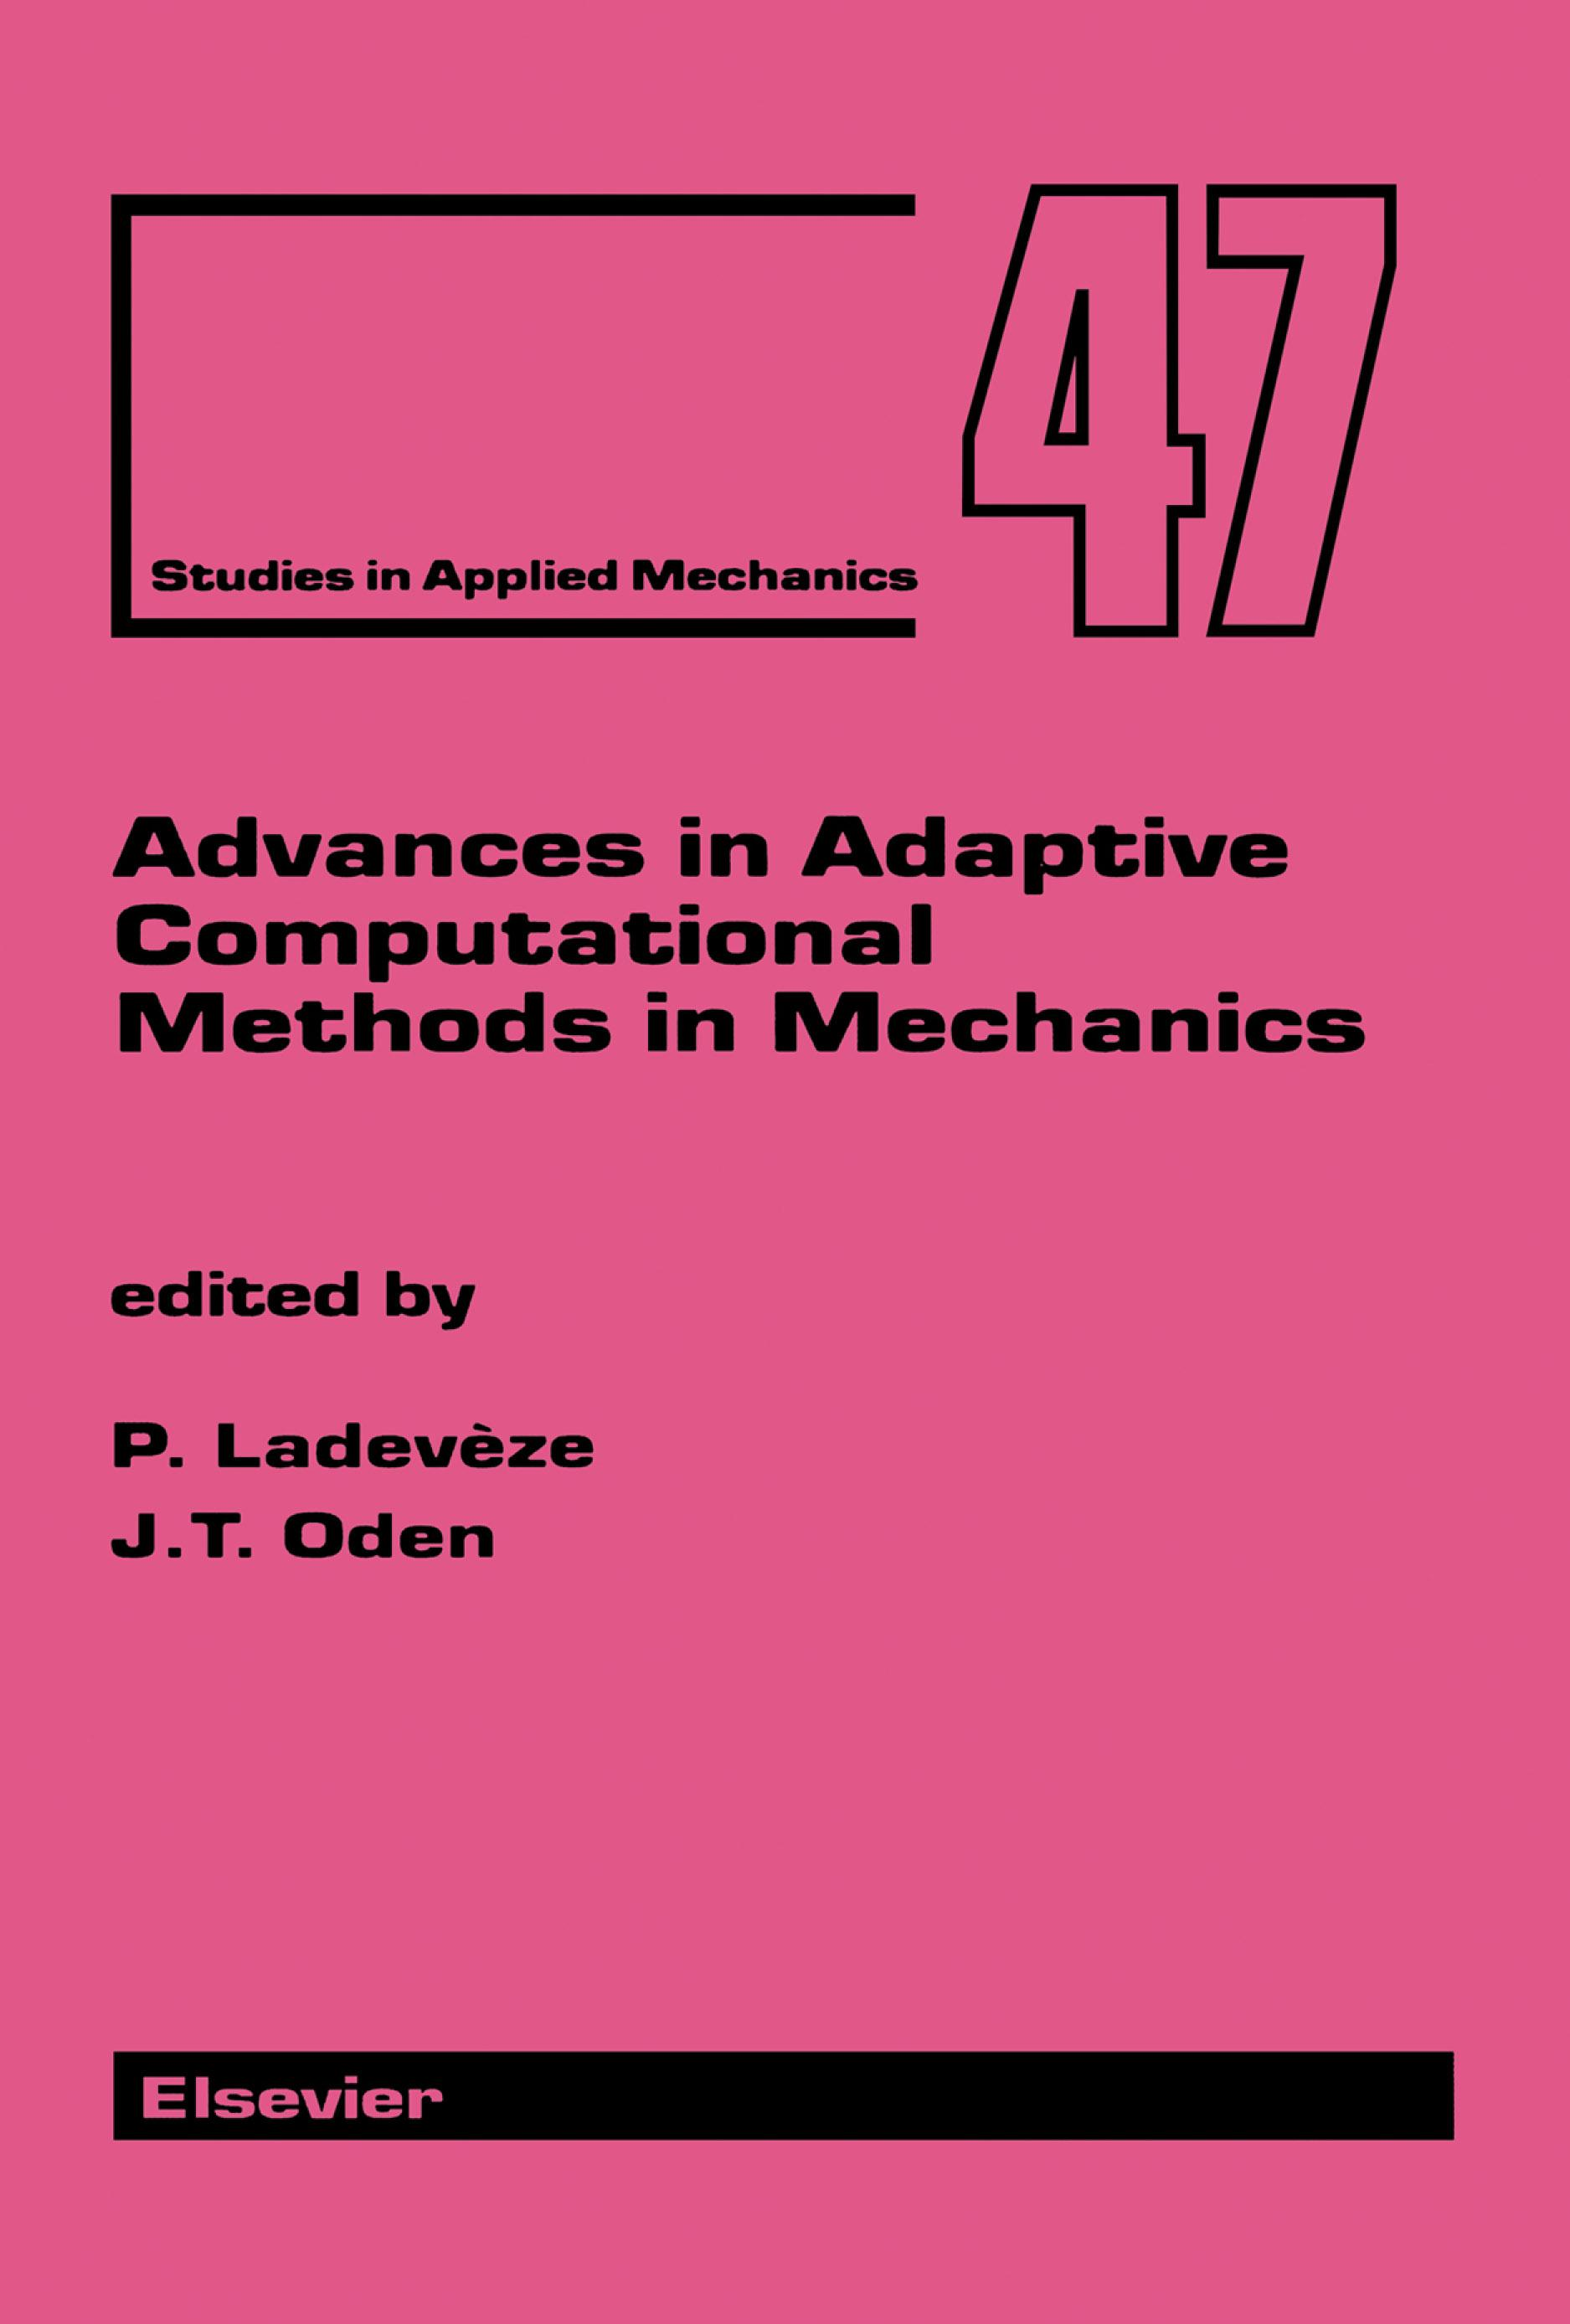 Advances in Adaptive Computational Methods in Mechanics